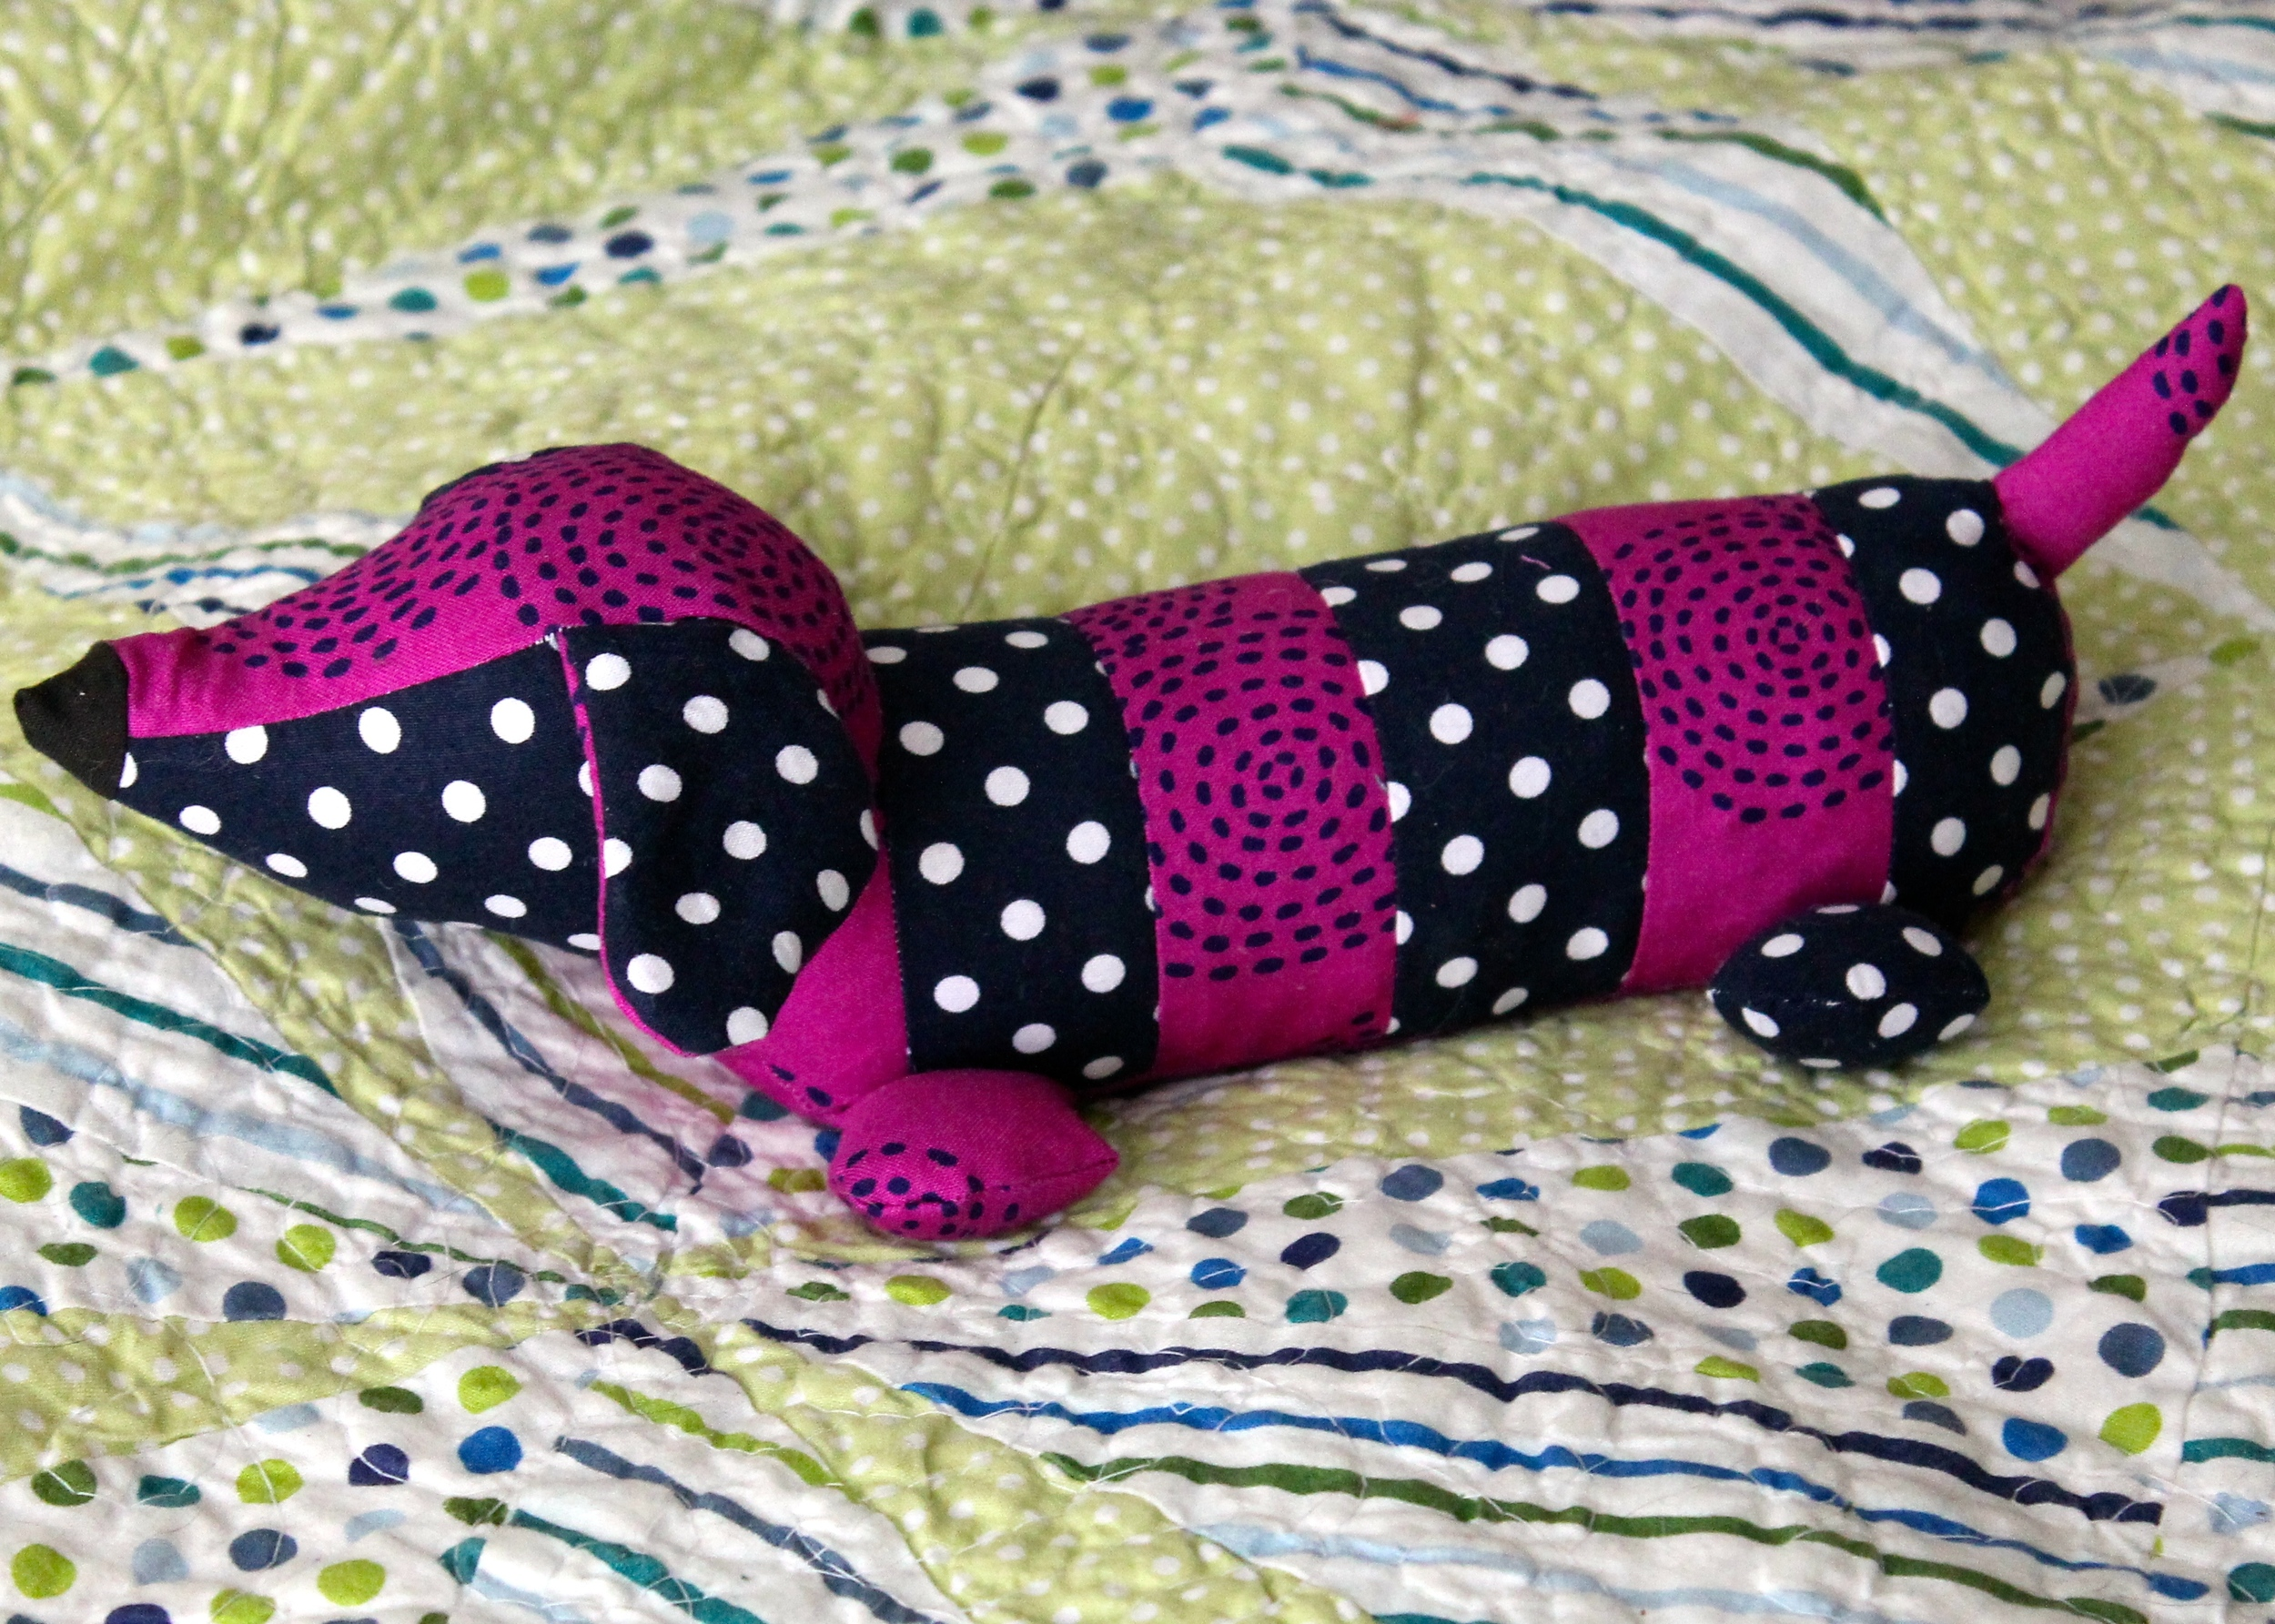 Stuffed dachshund with alternating purple and blue and white fabric